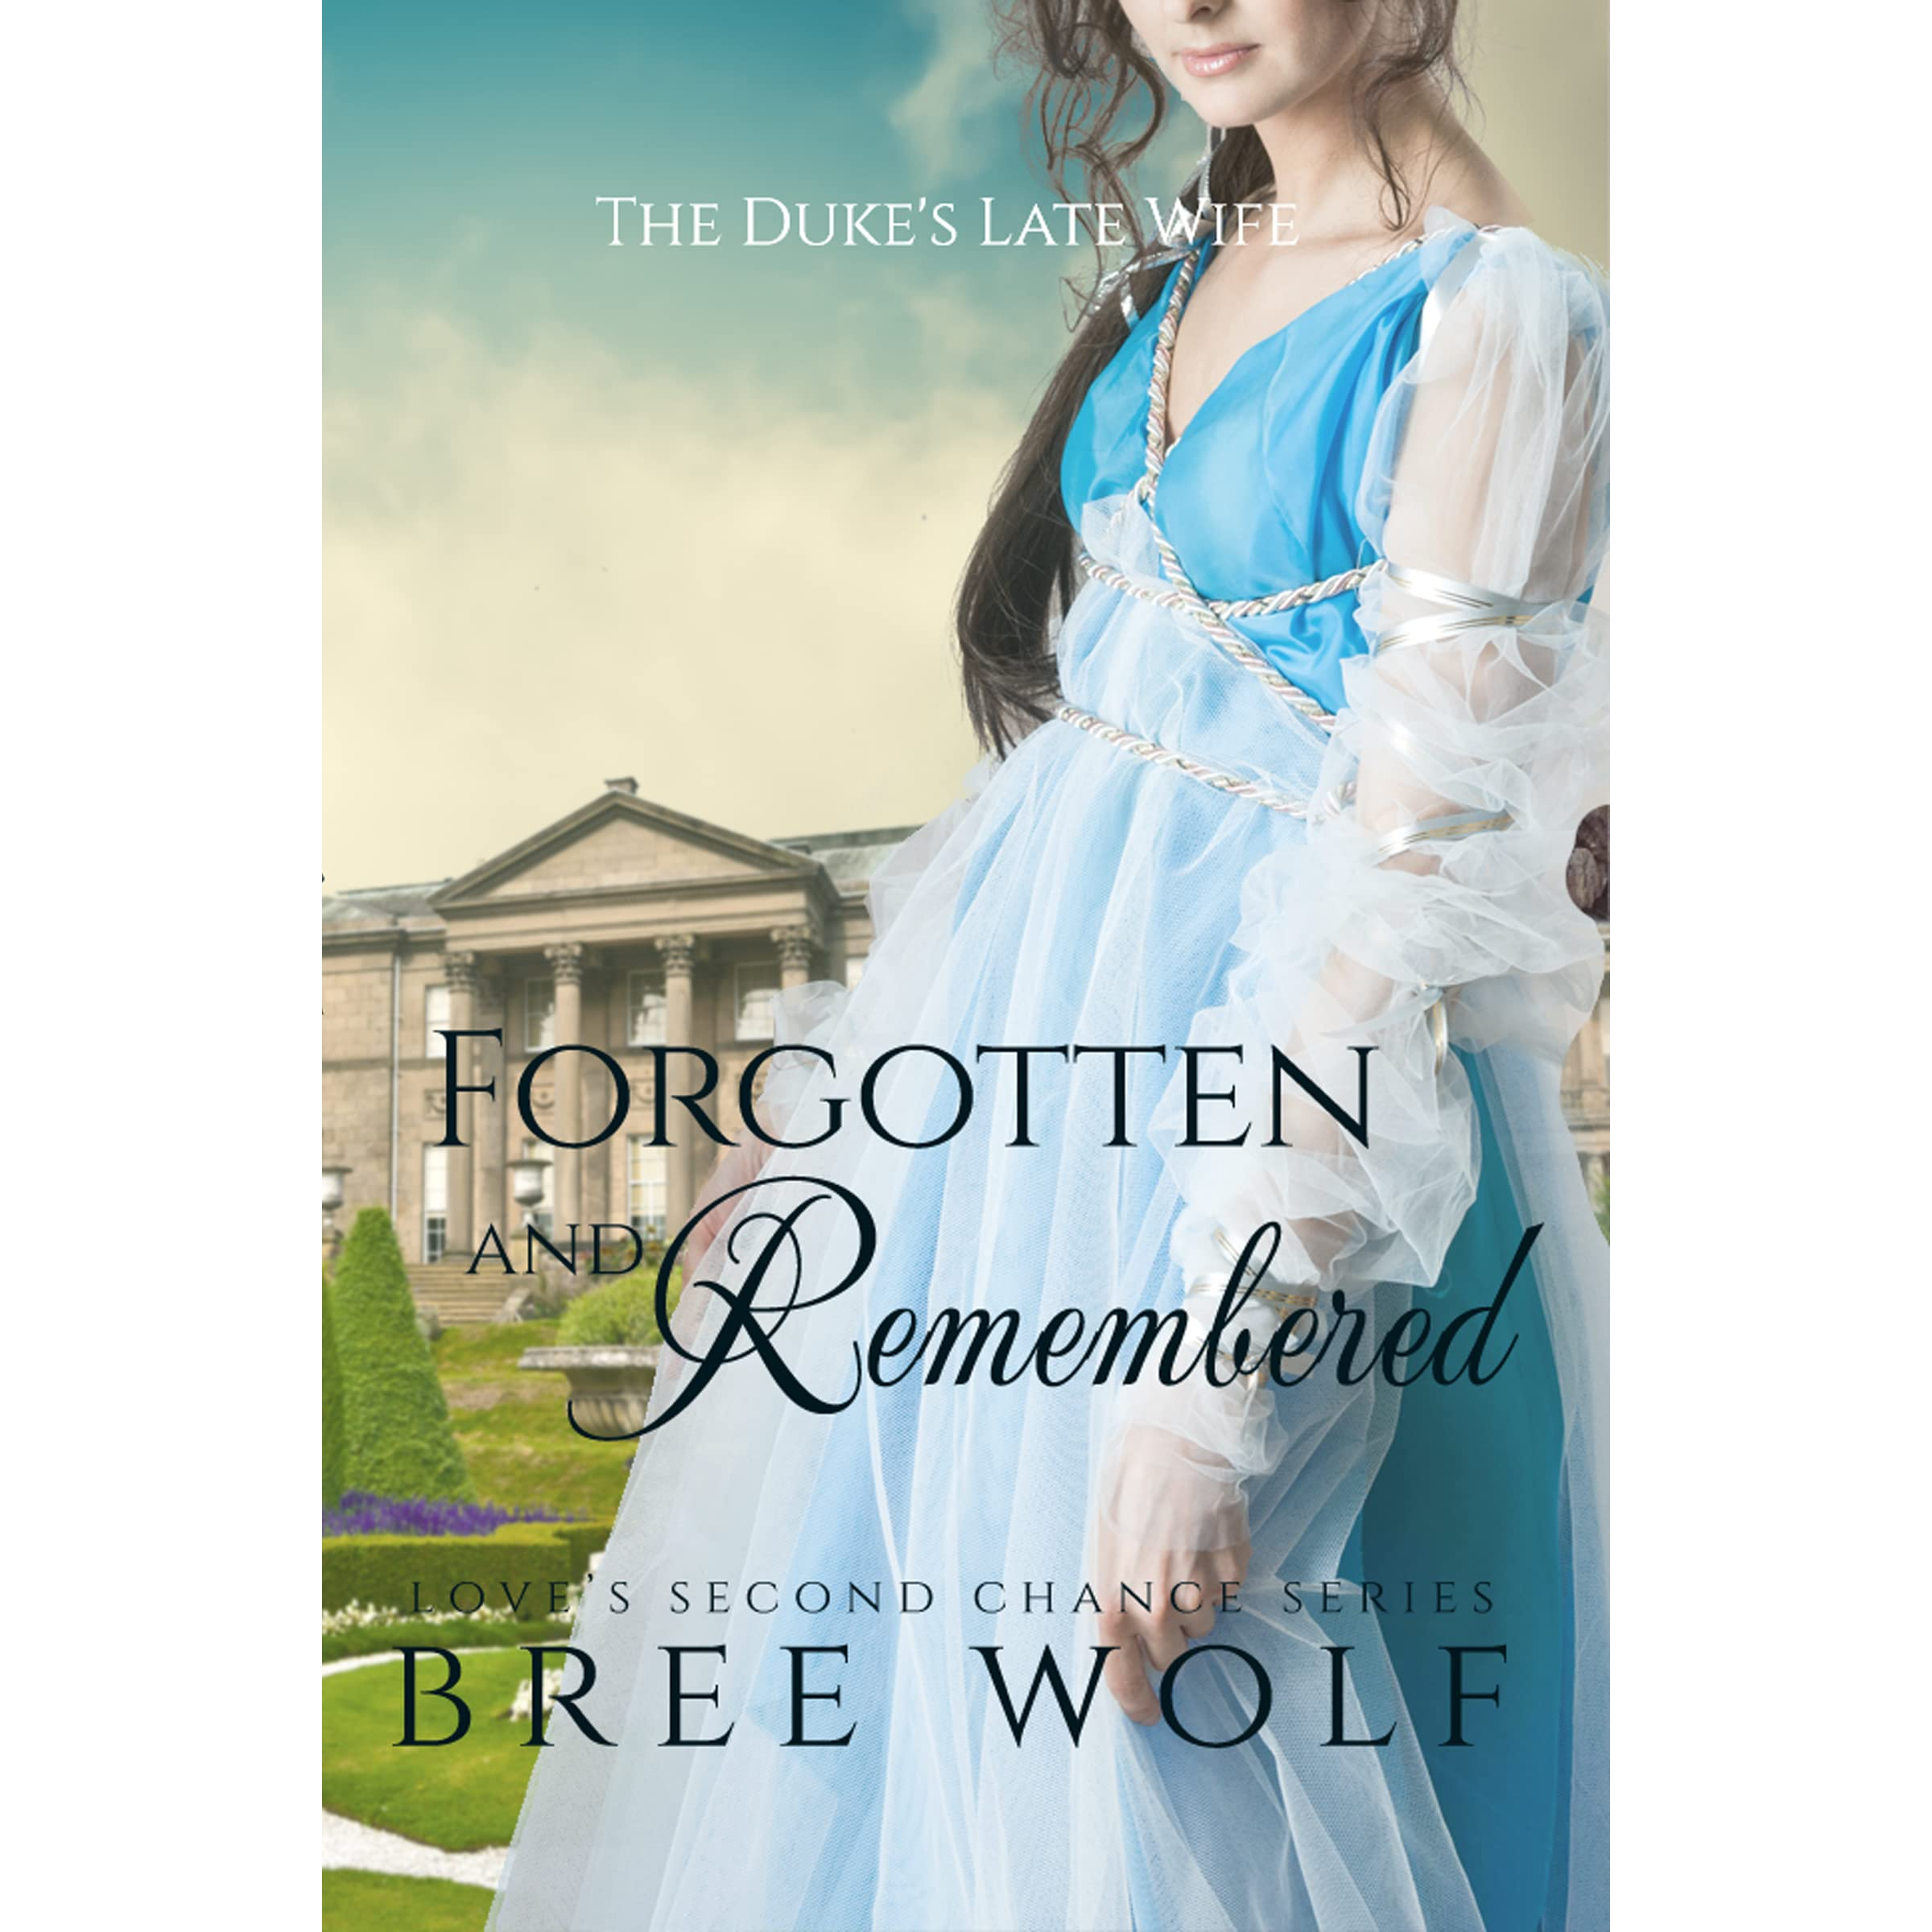 Beförderung exquisites Design super service Forgotten & Remembered: The Duke's Late Wife by Bree Wolf